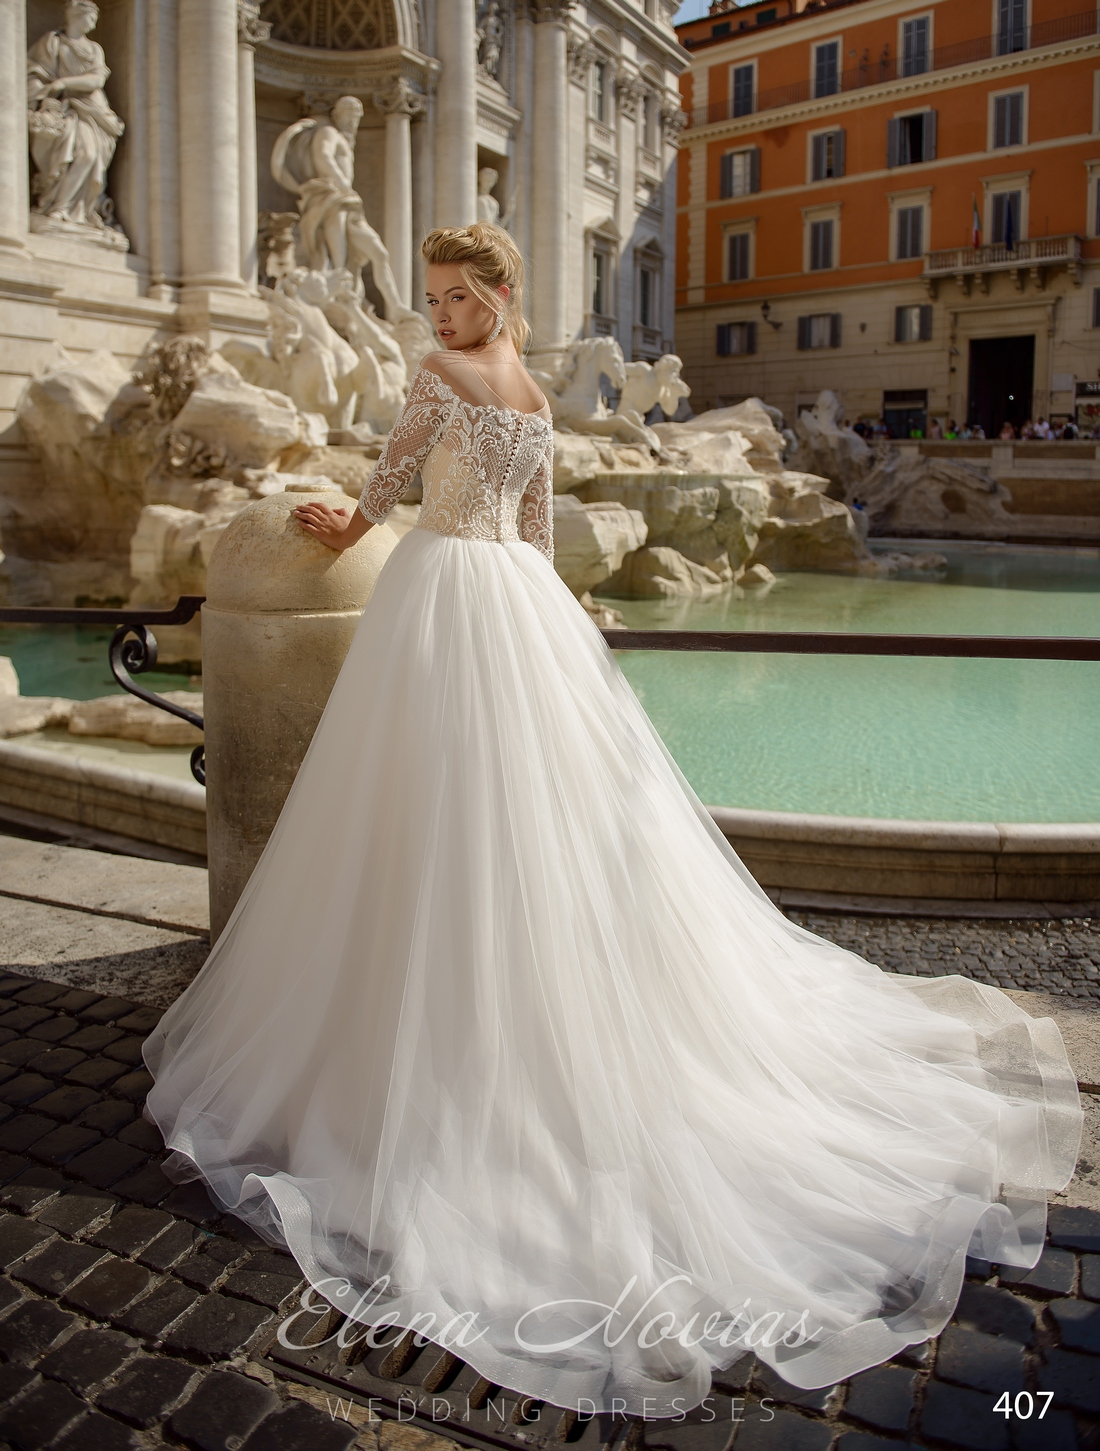 Wedding dress wholesale 407